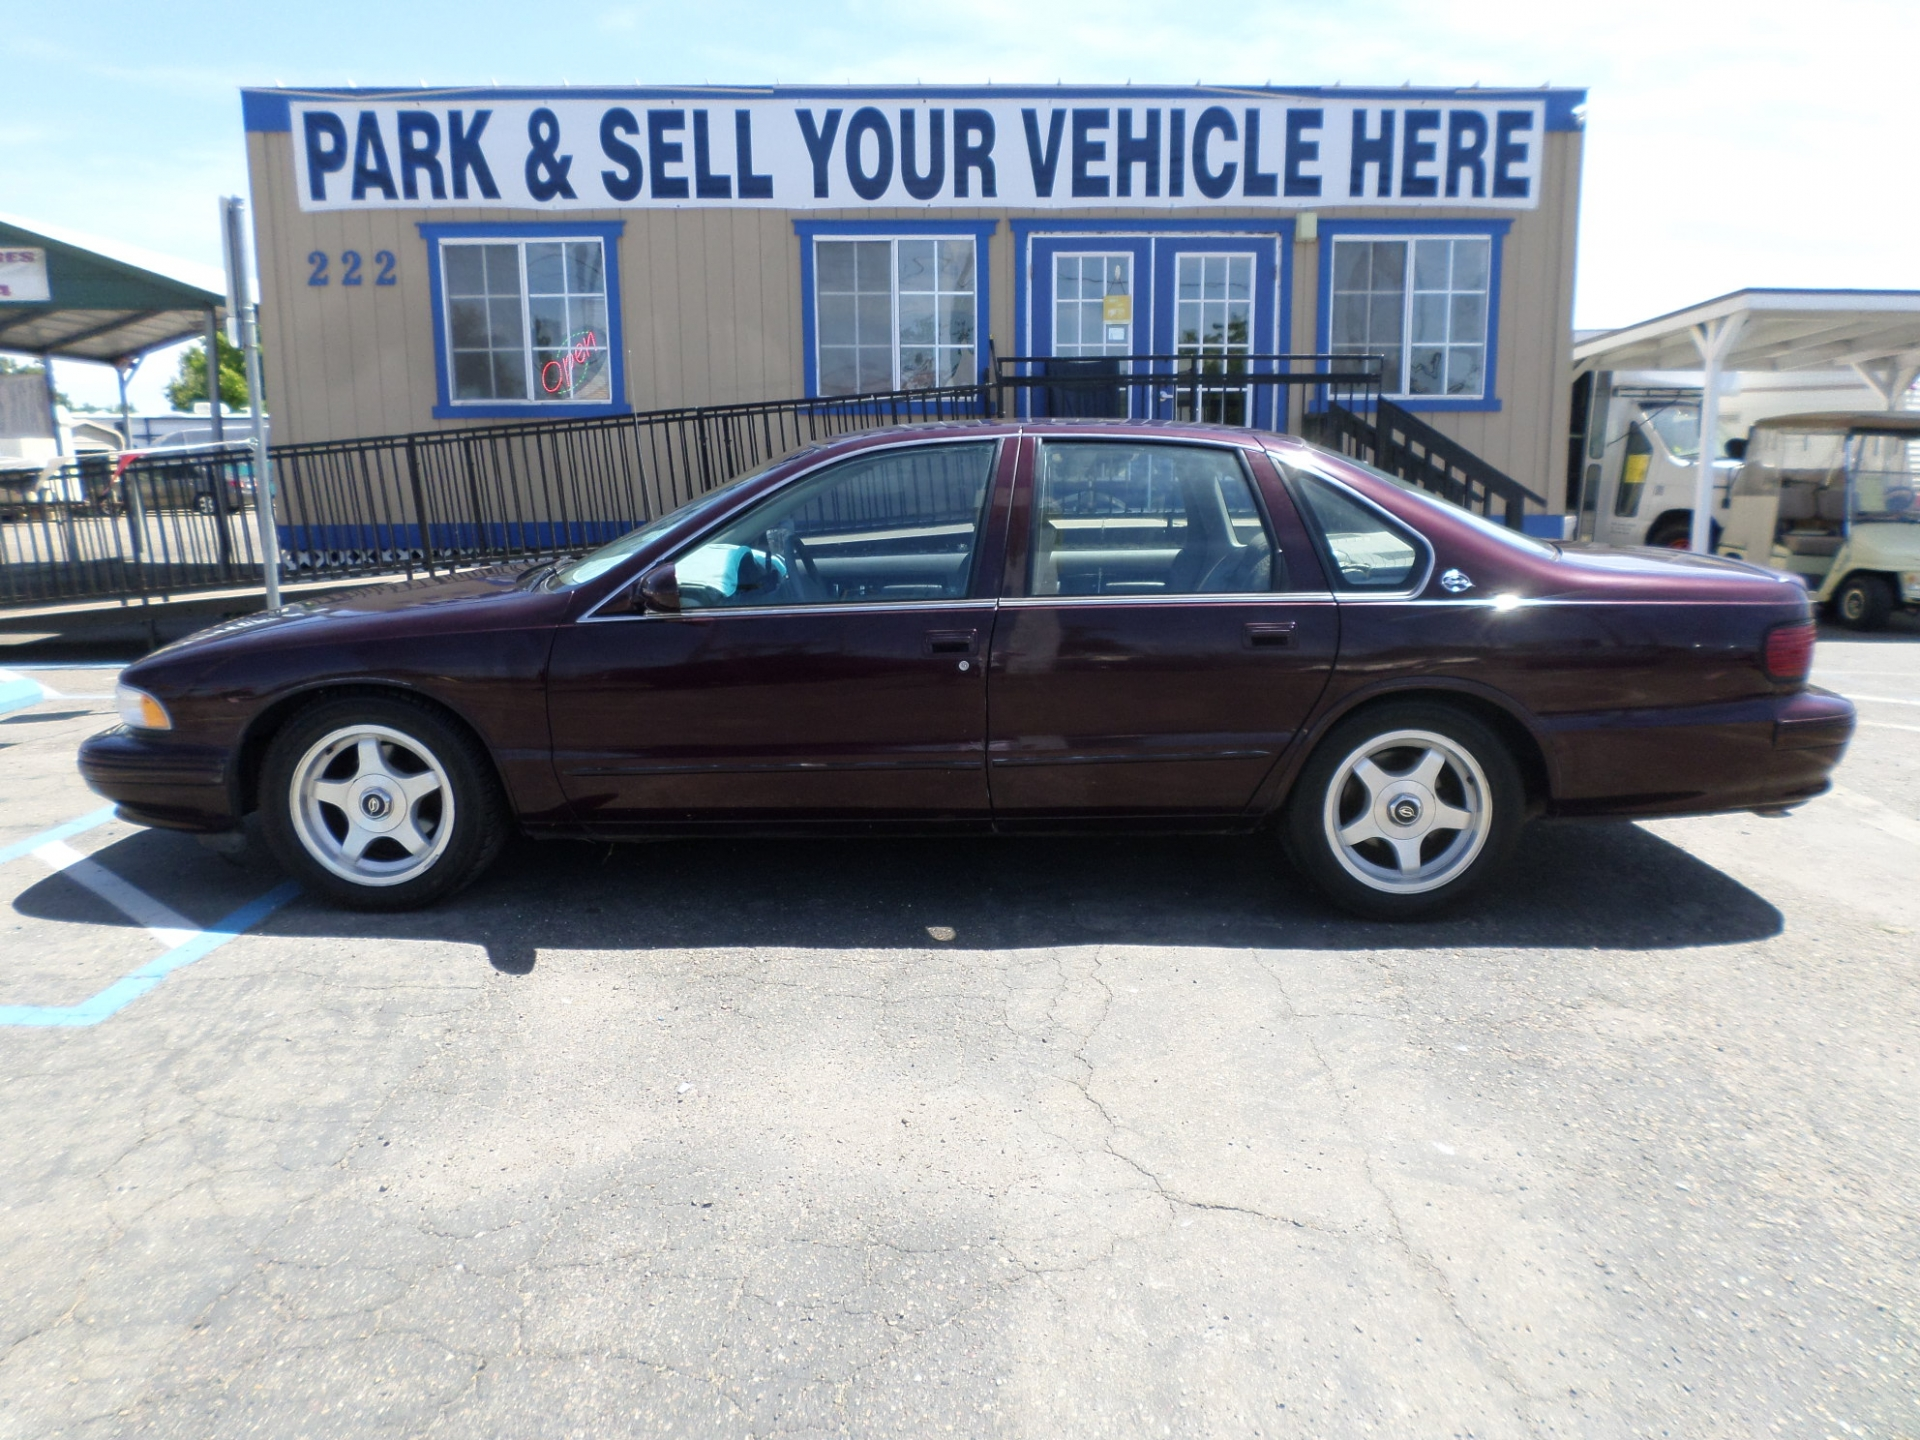 Car for sale: 1995 Chevrolet Impala SS in Lodi Stockton CA